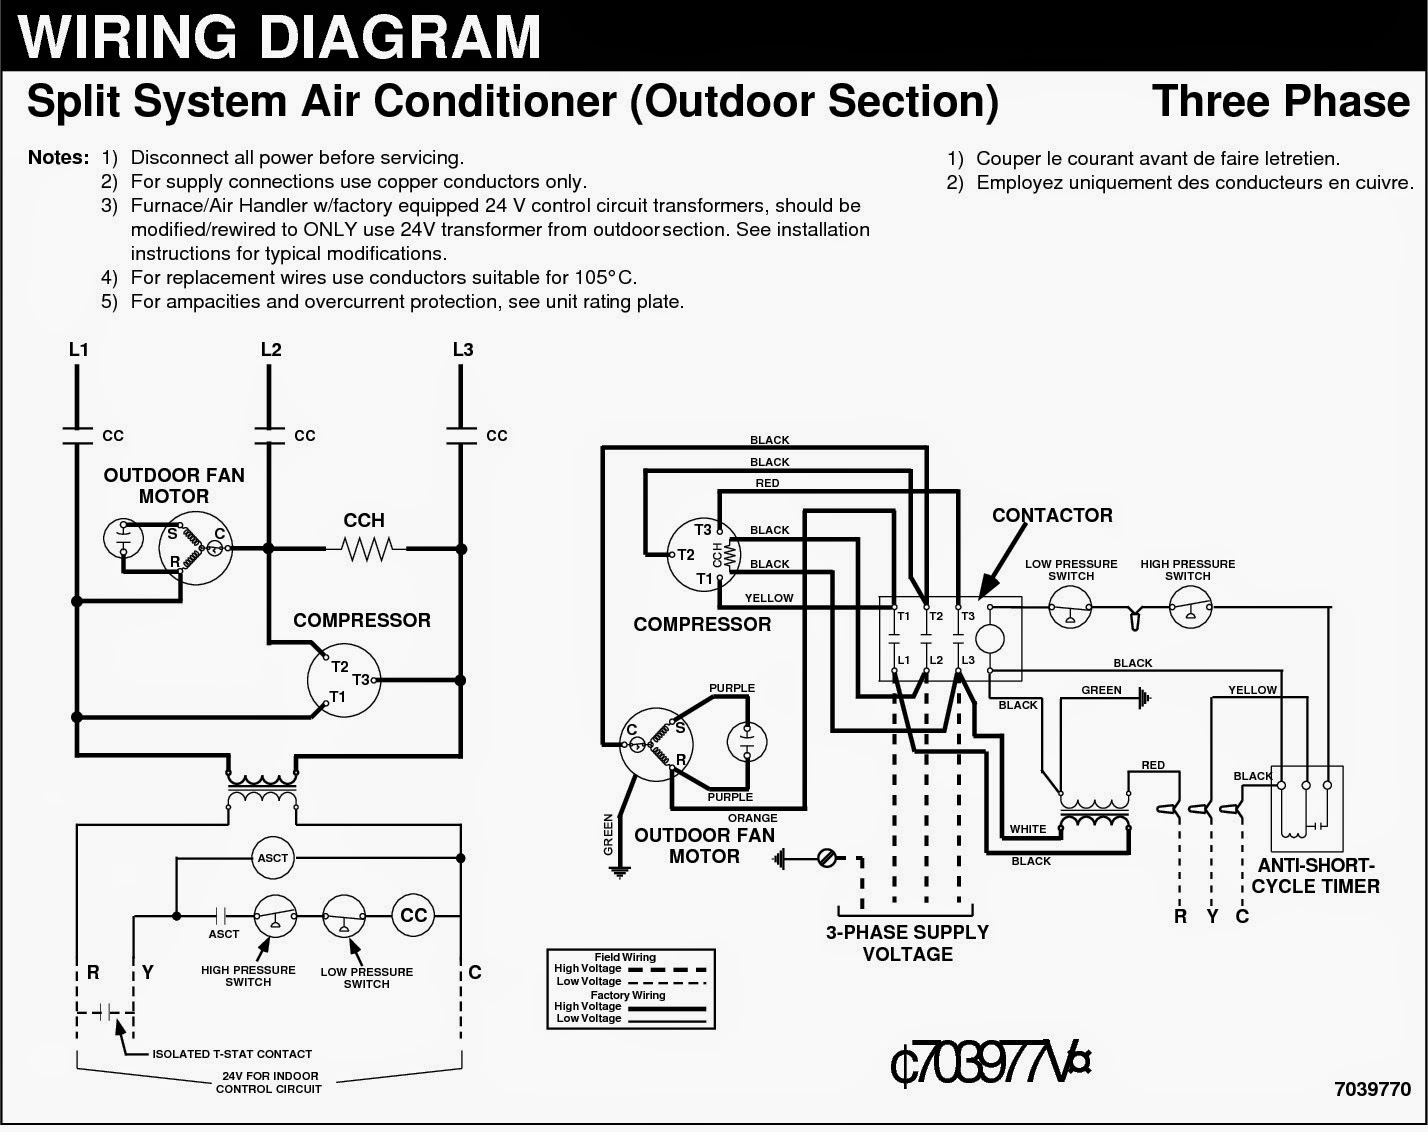 3+phase electrical wiring diagrams for air conditioning systems part two mini split wiring diagrams at alyssarenee.co